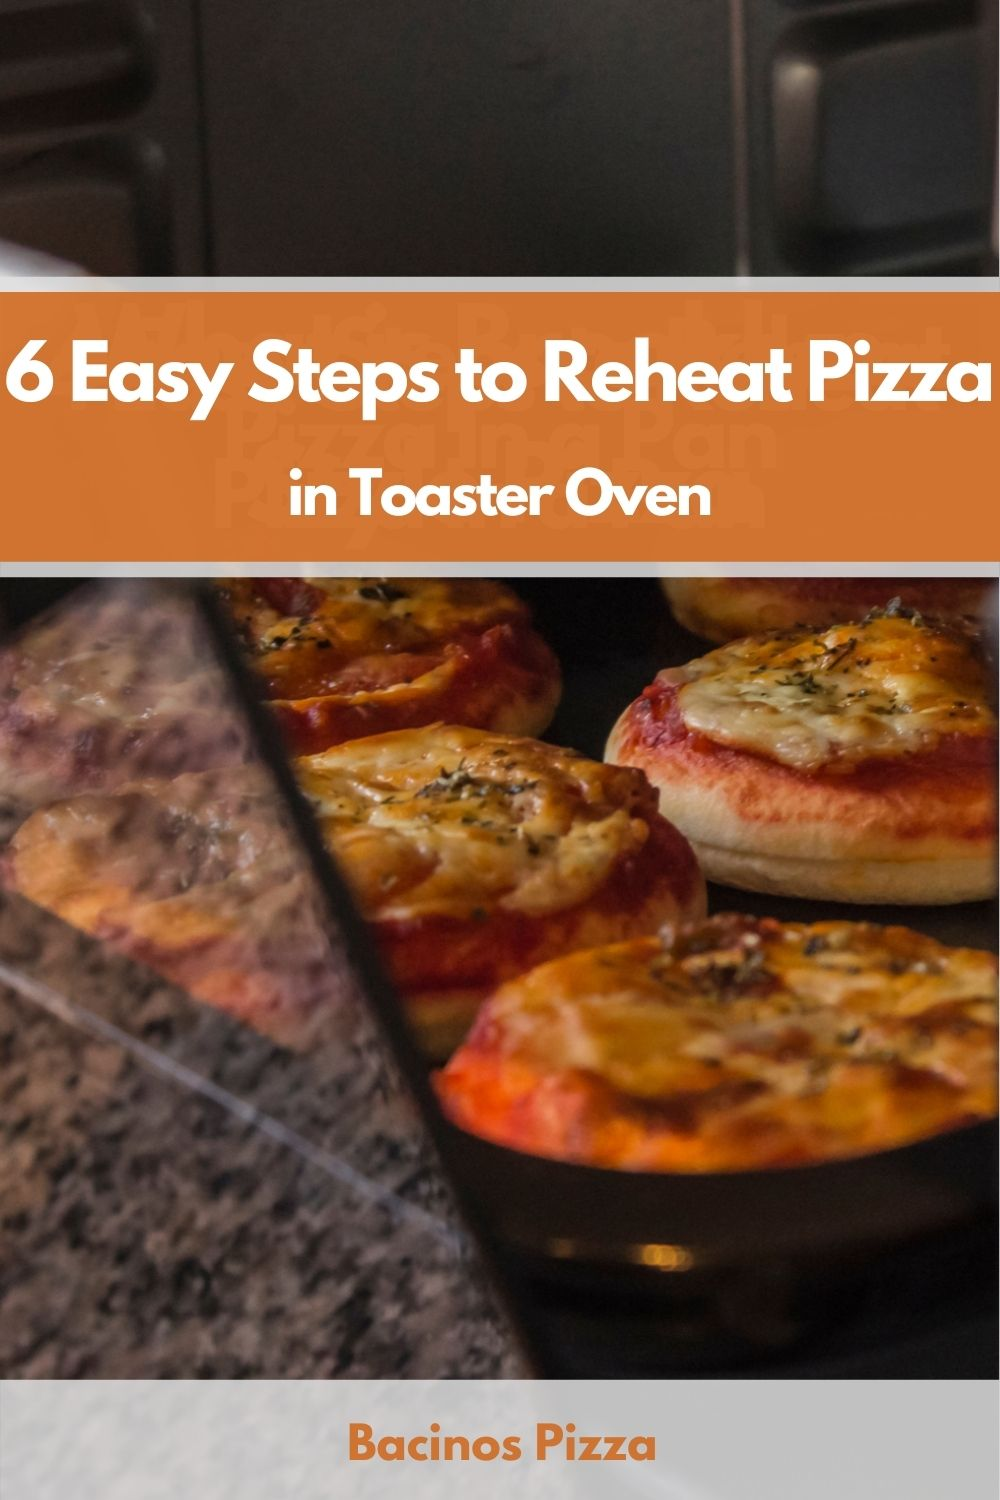 6 Easy Steps to Reheat Pizza in Toaster Oven pin 2